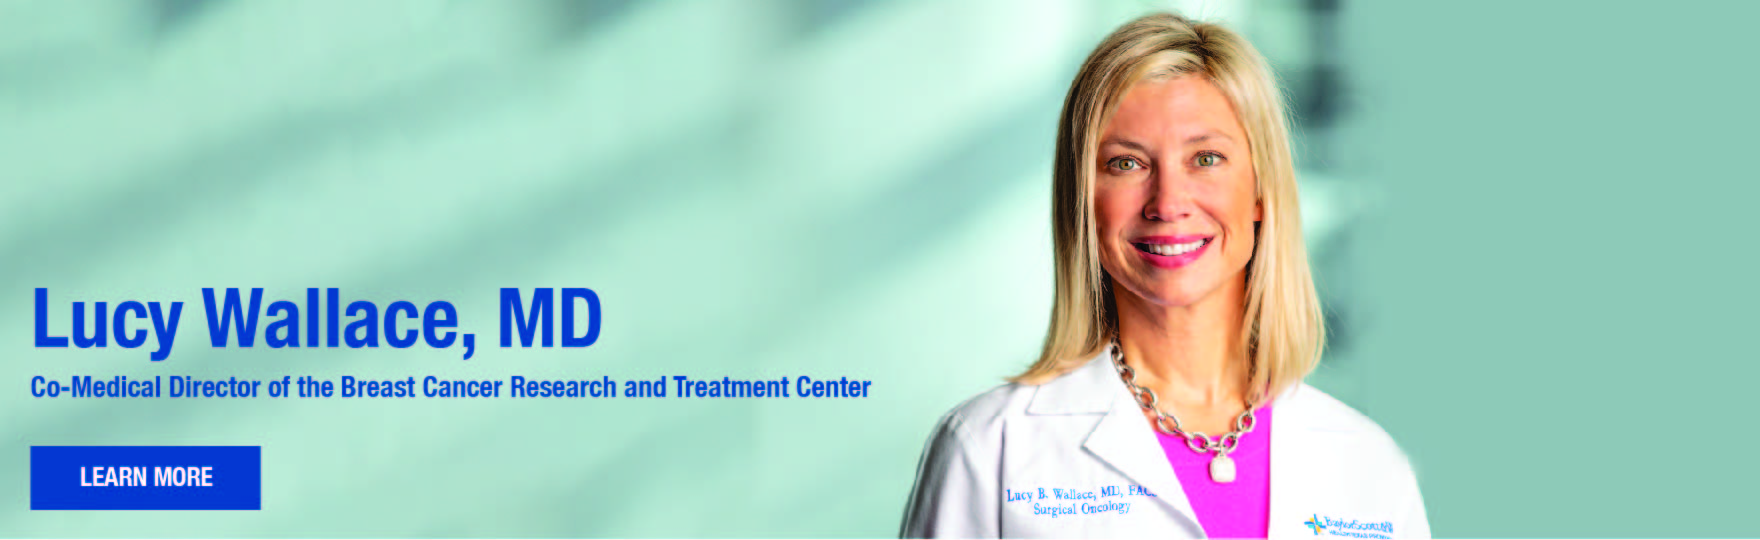 Lucy Wallace, MD: Co-Medical Director of the Breast Cancer Research and Treatment Center